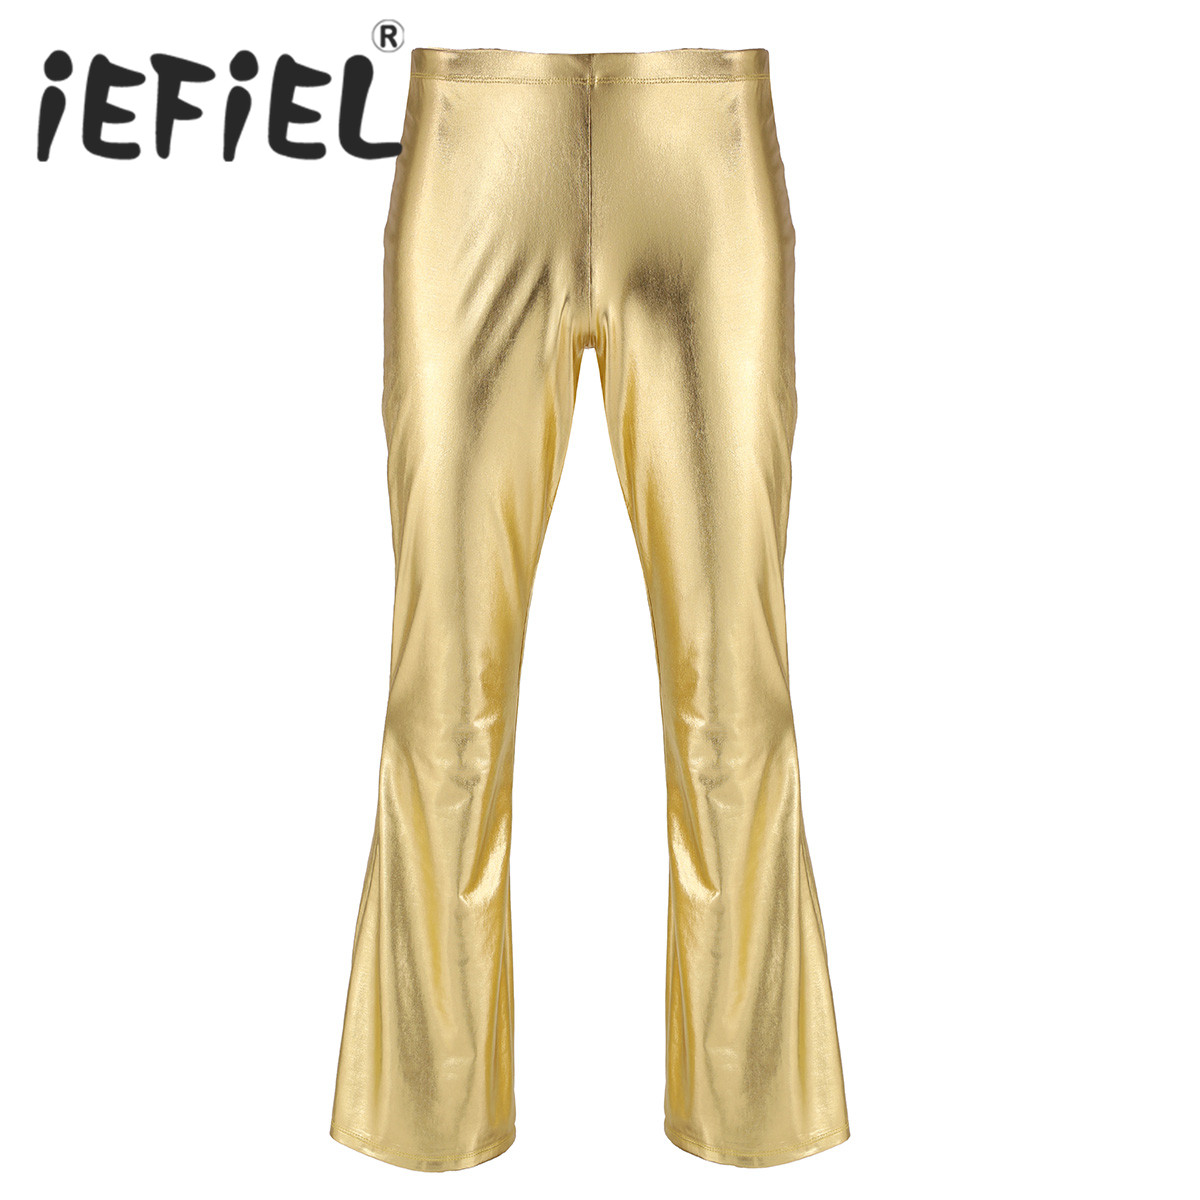 Fashion Adults Male Mens Shiny Metallic Disco Pants with Bell Bottom Flared Long Pants Dude Costume Nightwear Cosplay Trousers